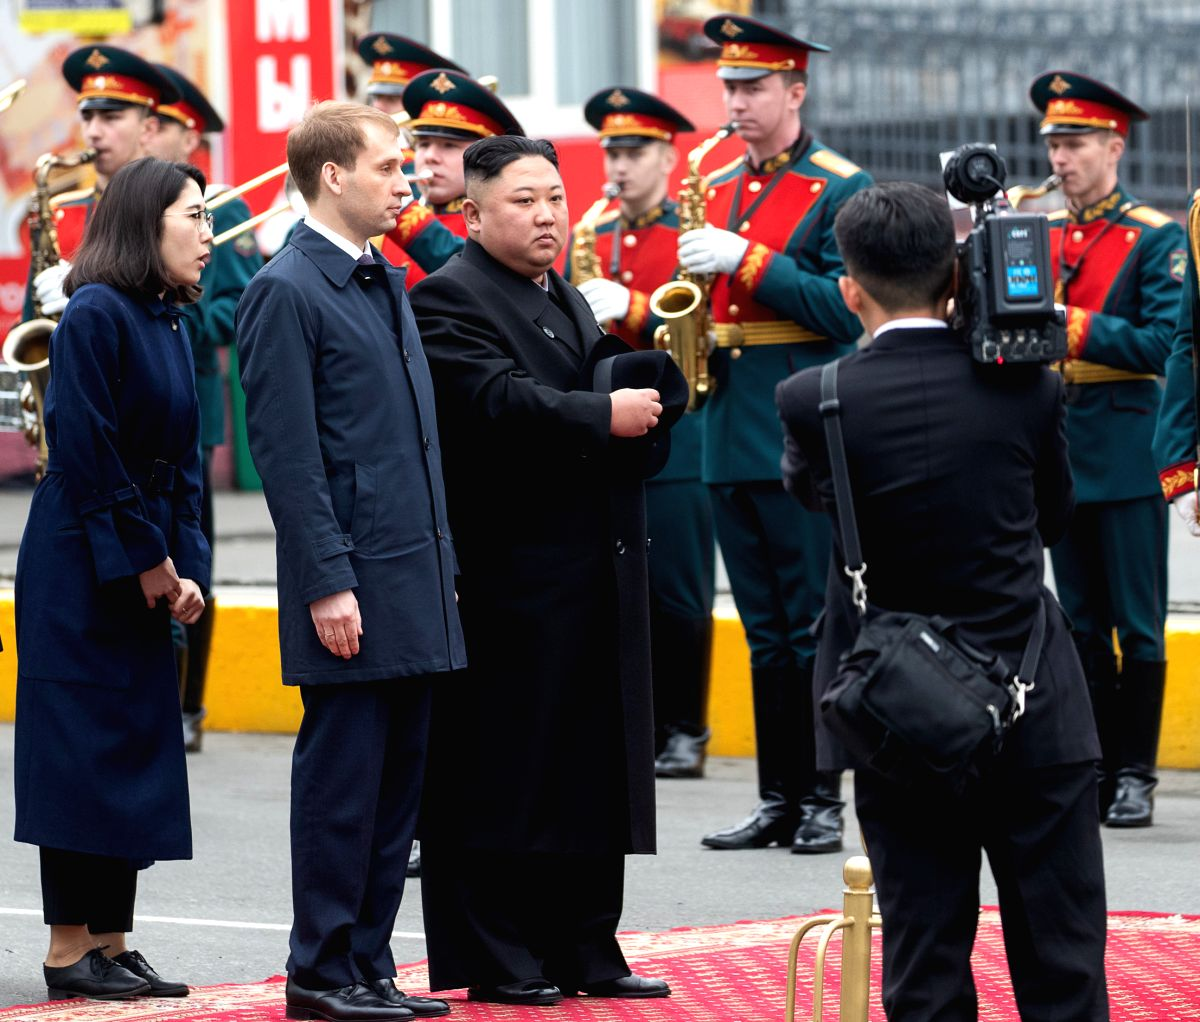 VLADIVOSTOK, April 24, 2019 (Xinhua) -- Top leader of the Democratic People's Republic of Korea (DPRK) Kim Jong Un attends the welcome ceremony in Vladivostok, Russia, April 24, 2019. Kim Jong Un arrived here in his train on Wednesday for his first m